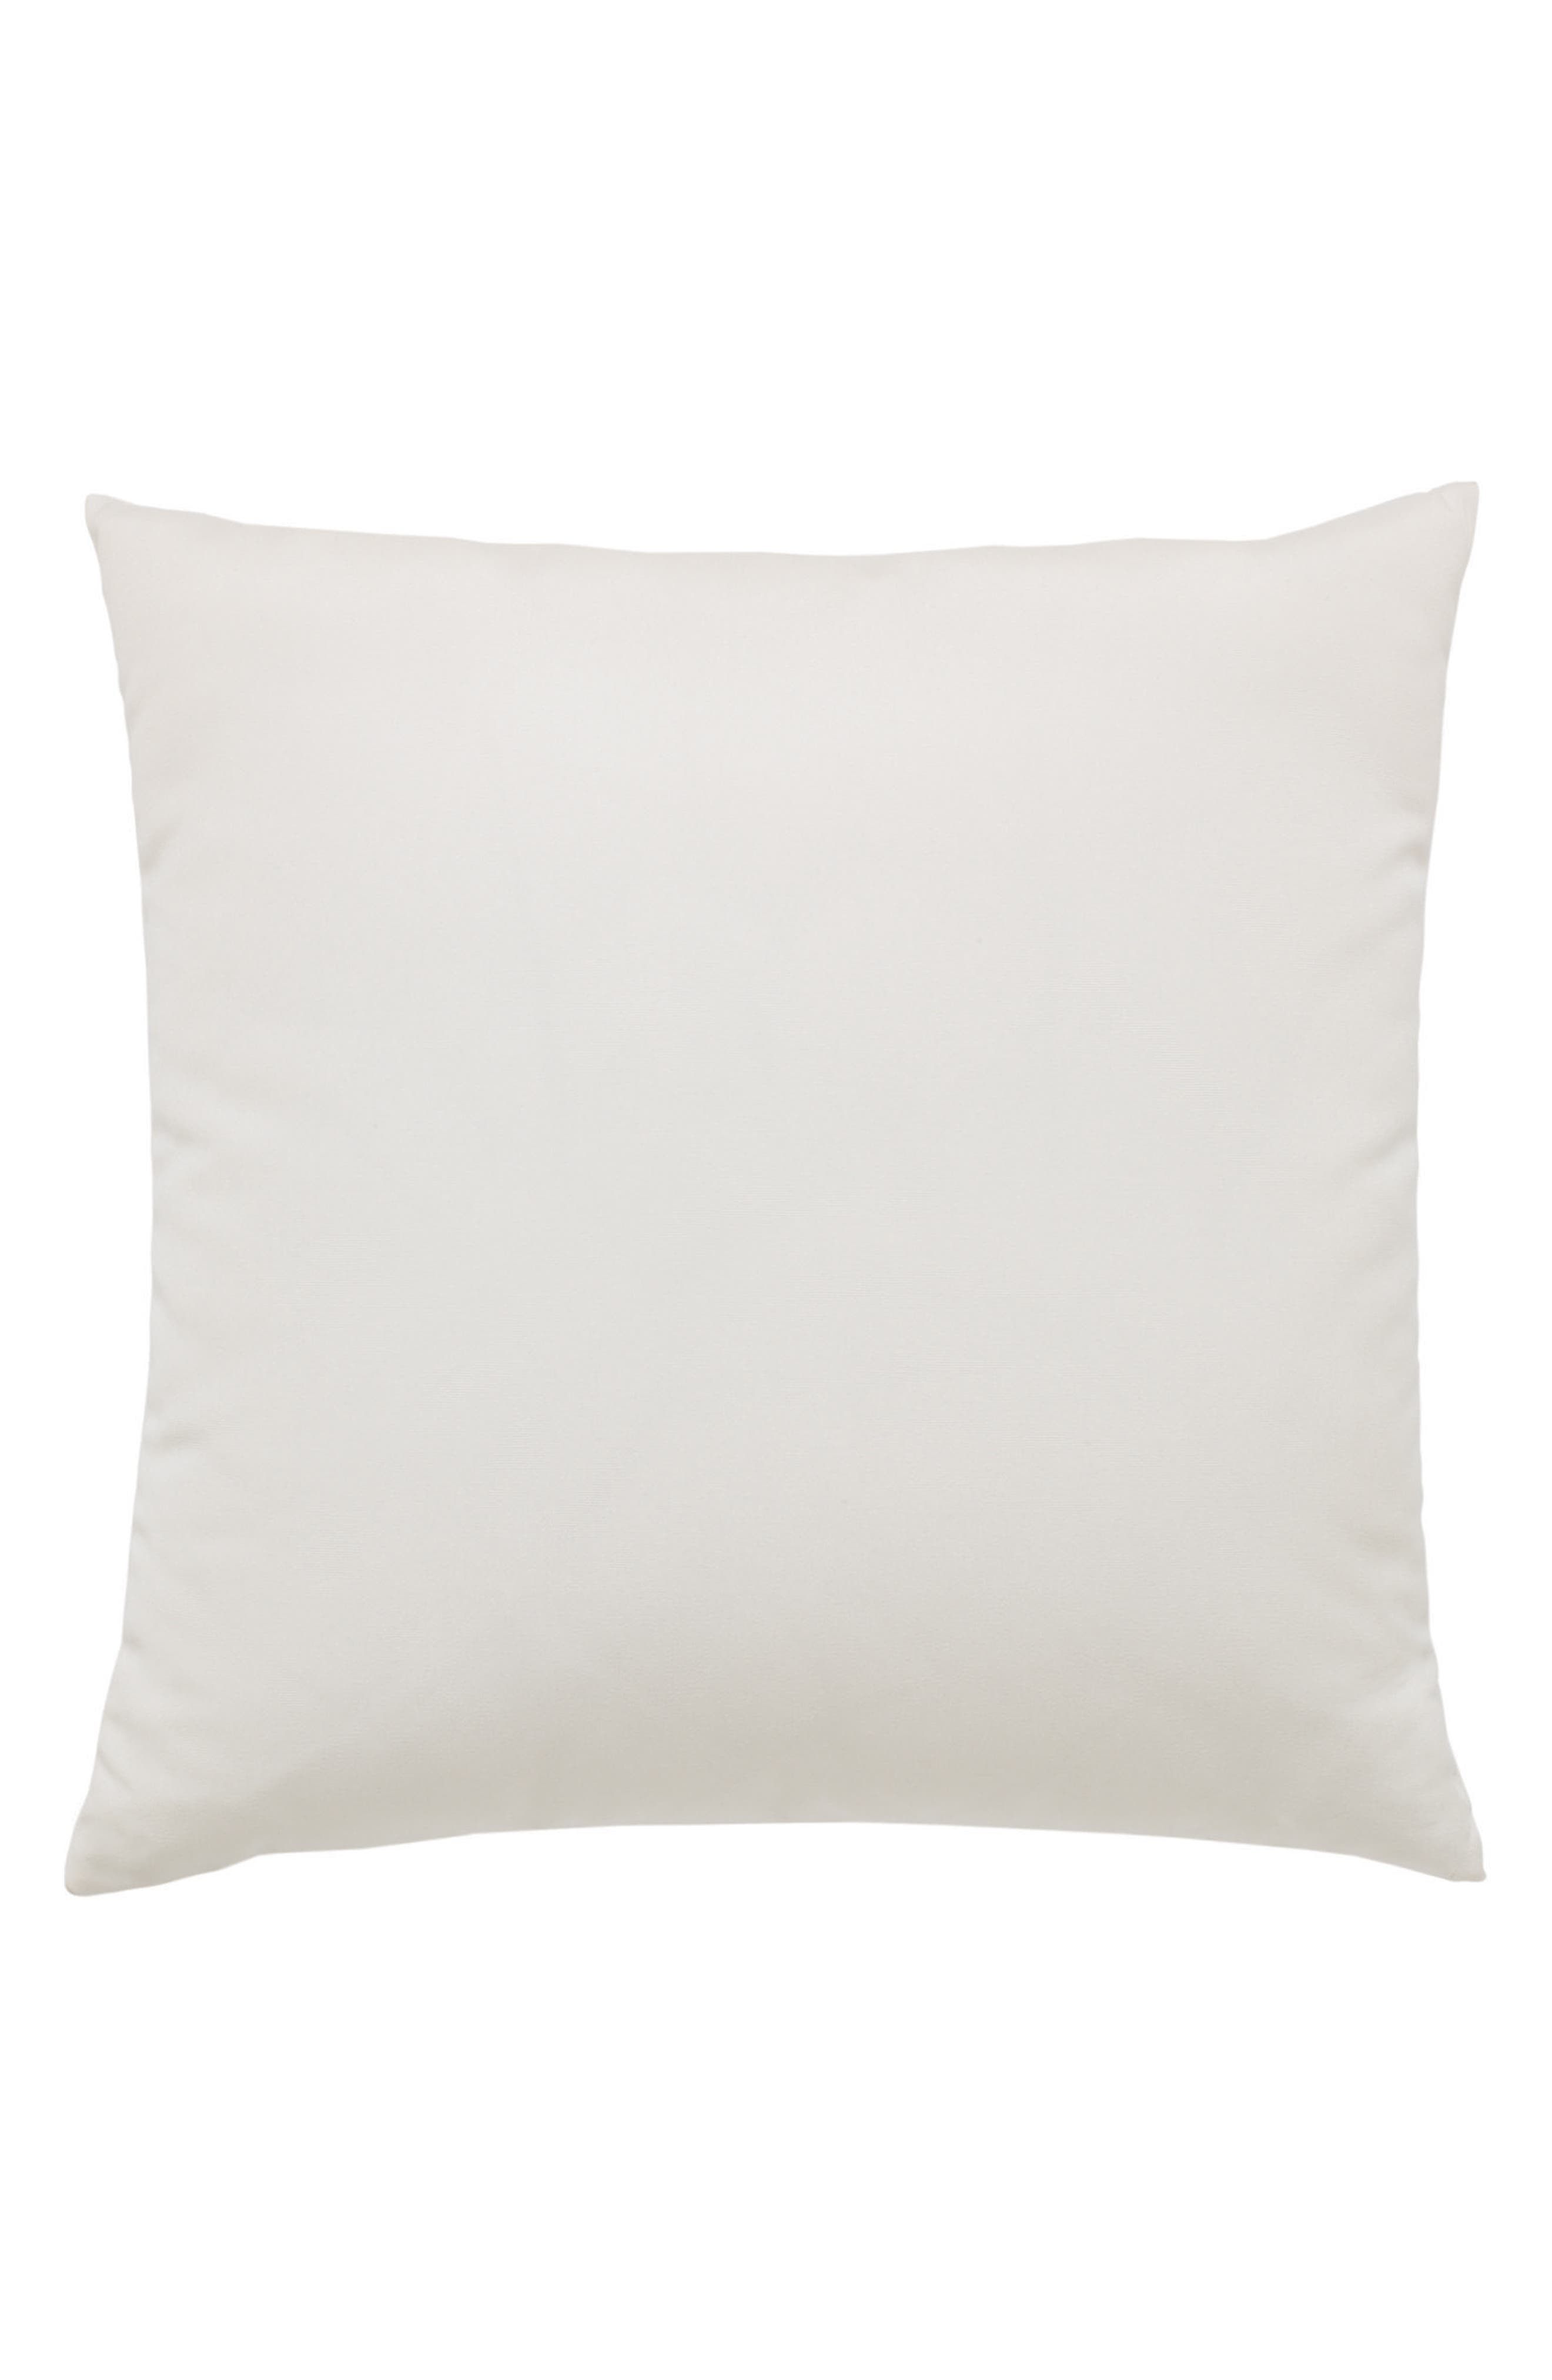 Leaf Lagoon Indoor/Outdoor Accent Pillow,                             Alternate thumbnail 2, color,                             White Blue